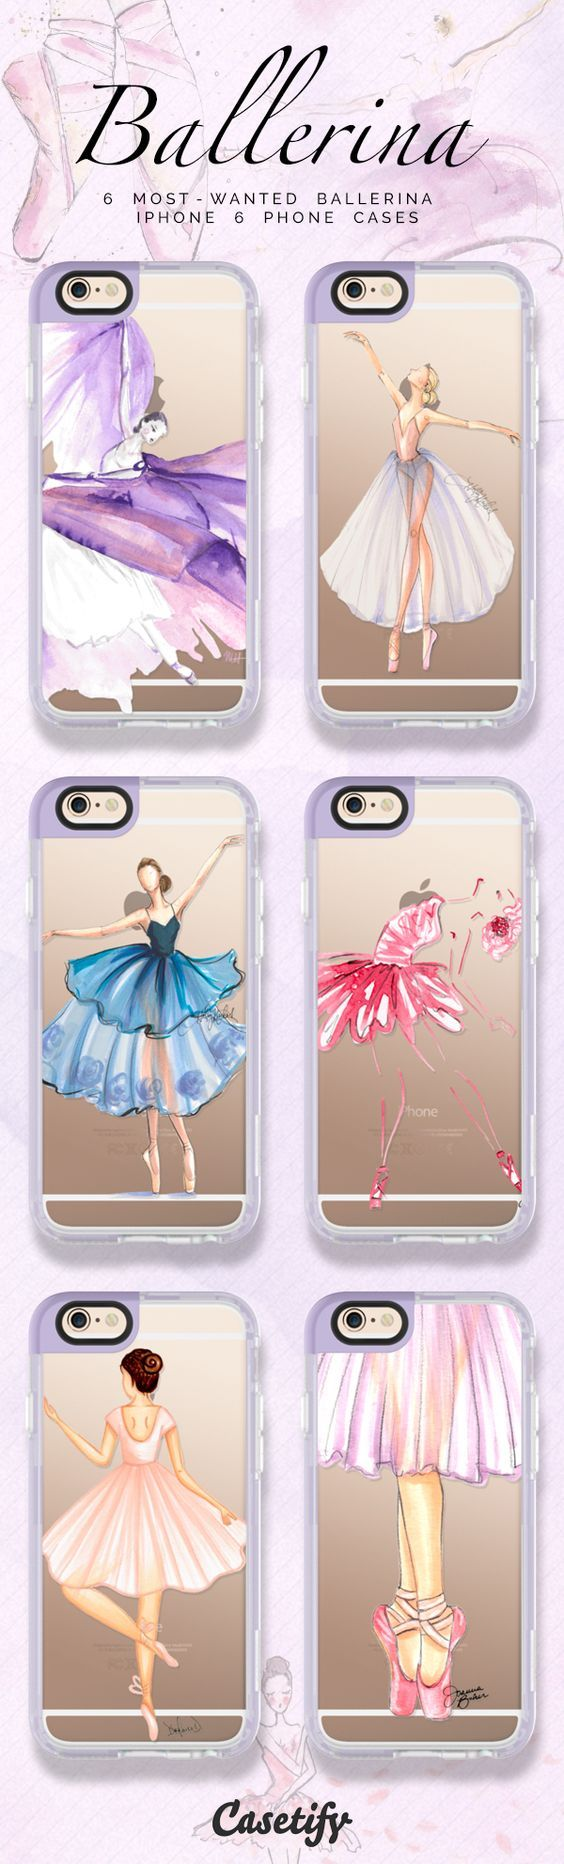 6 Most wanted ballerina iPhone 6 protective phone cases